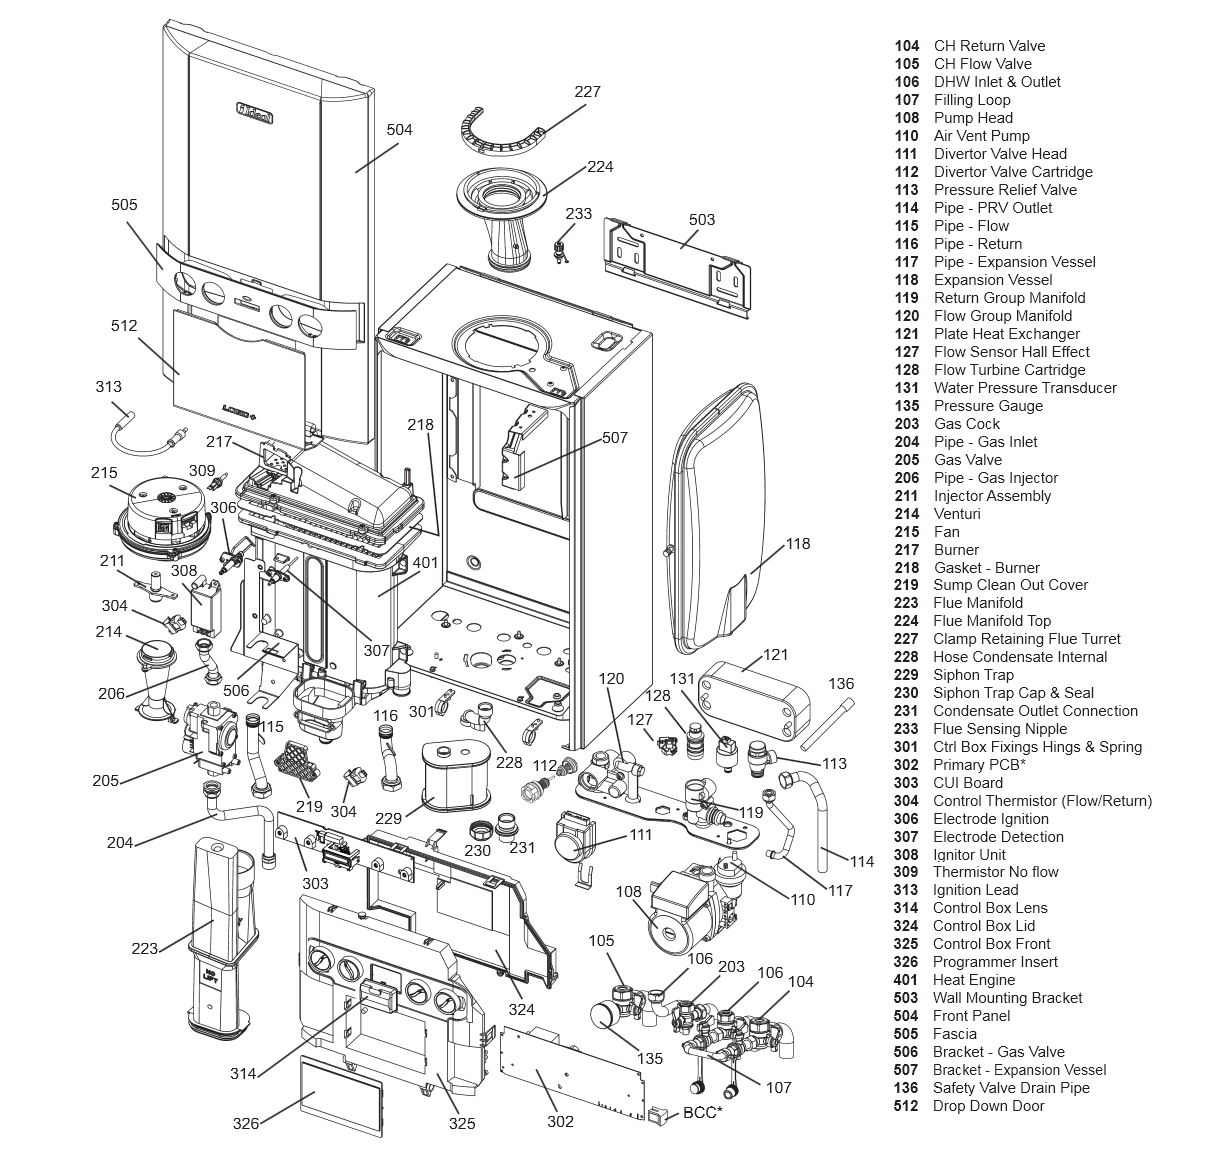 Boiler Manuals: Ideal Logic + Combi 35